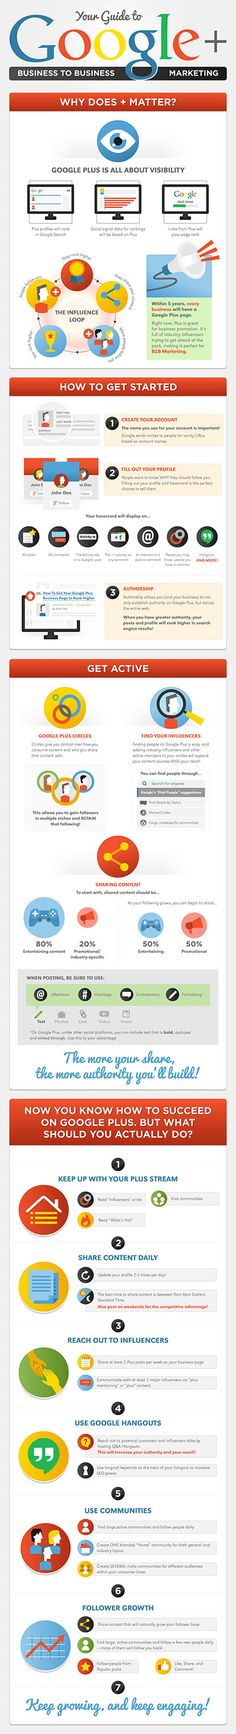 Google Plus Business to Business